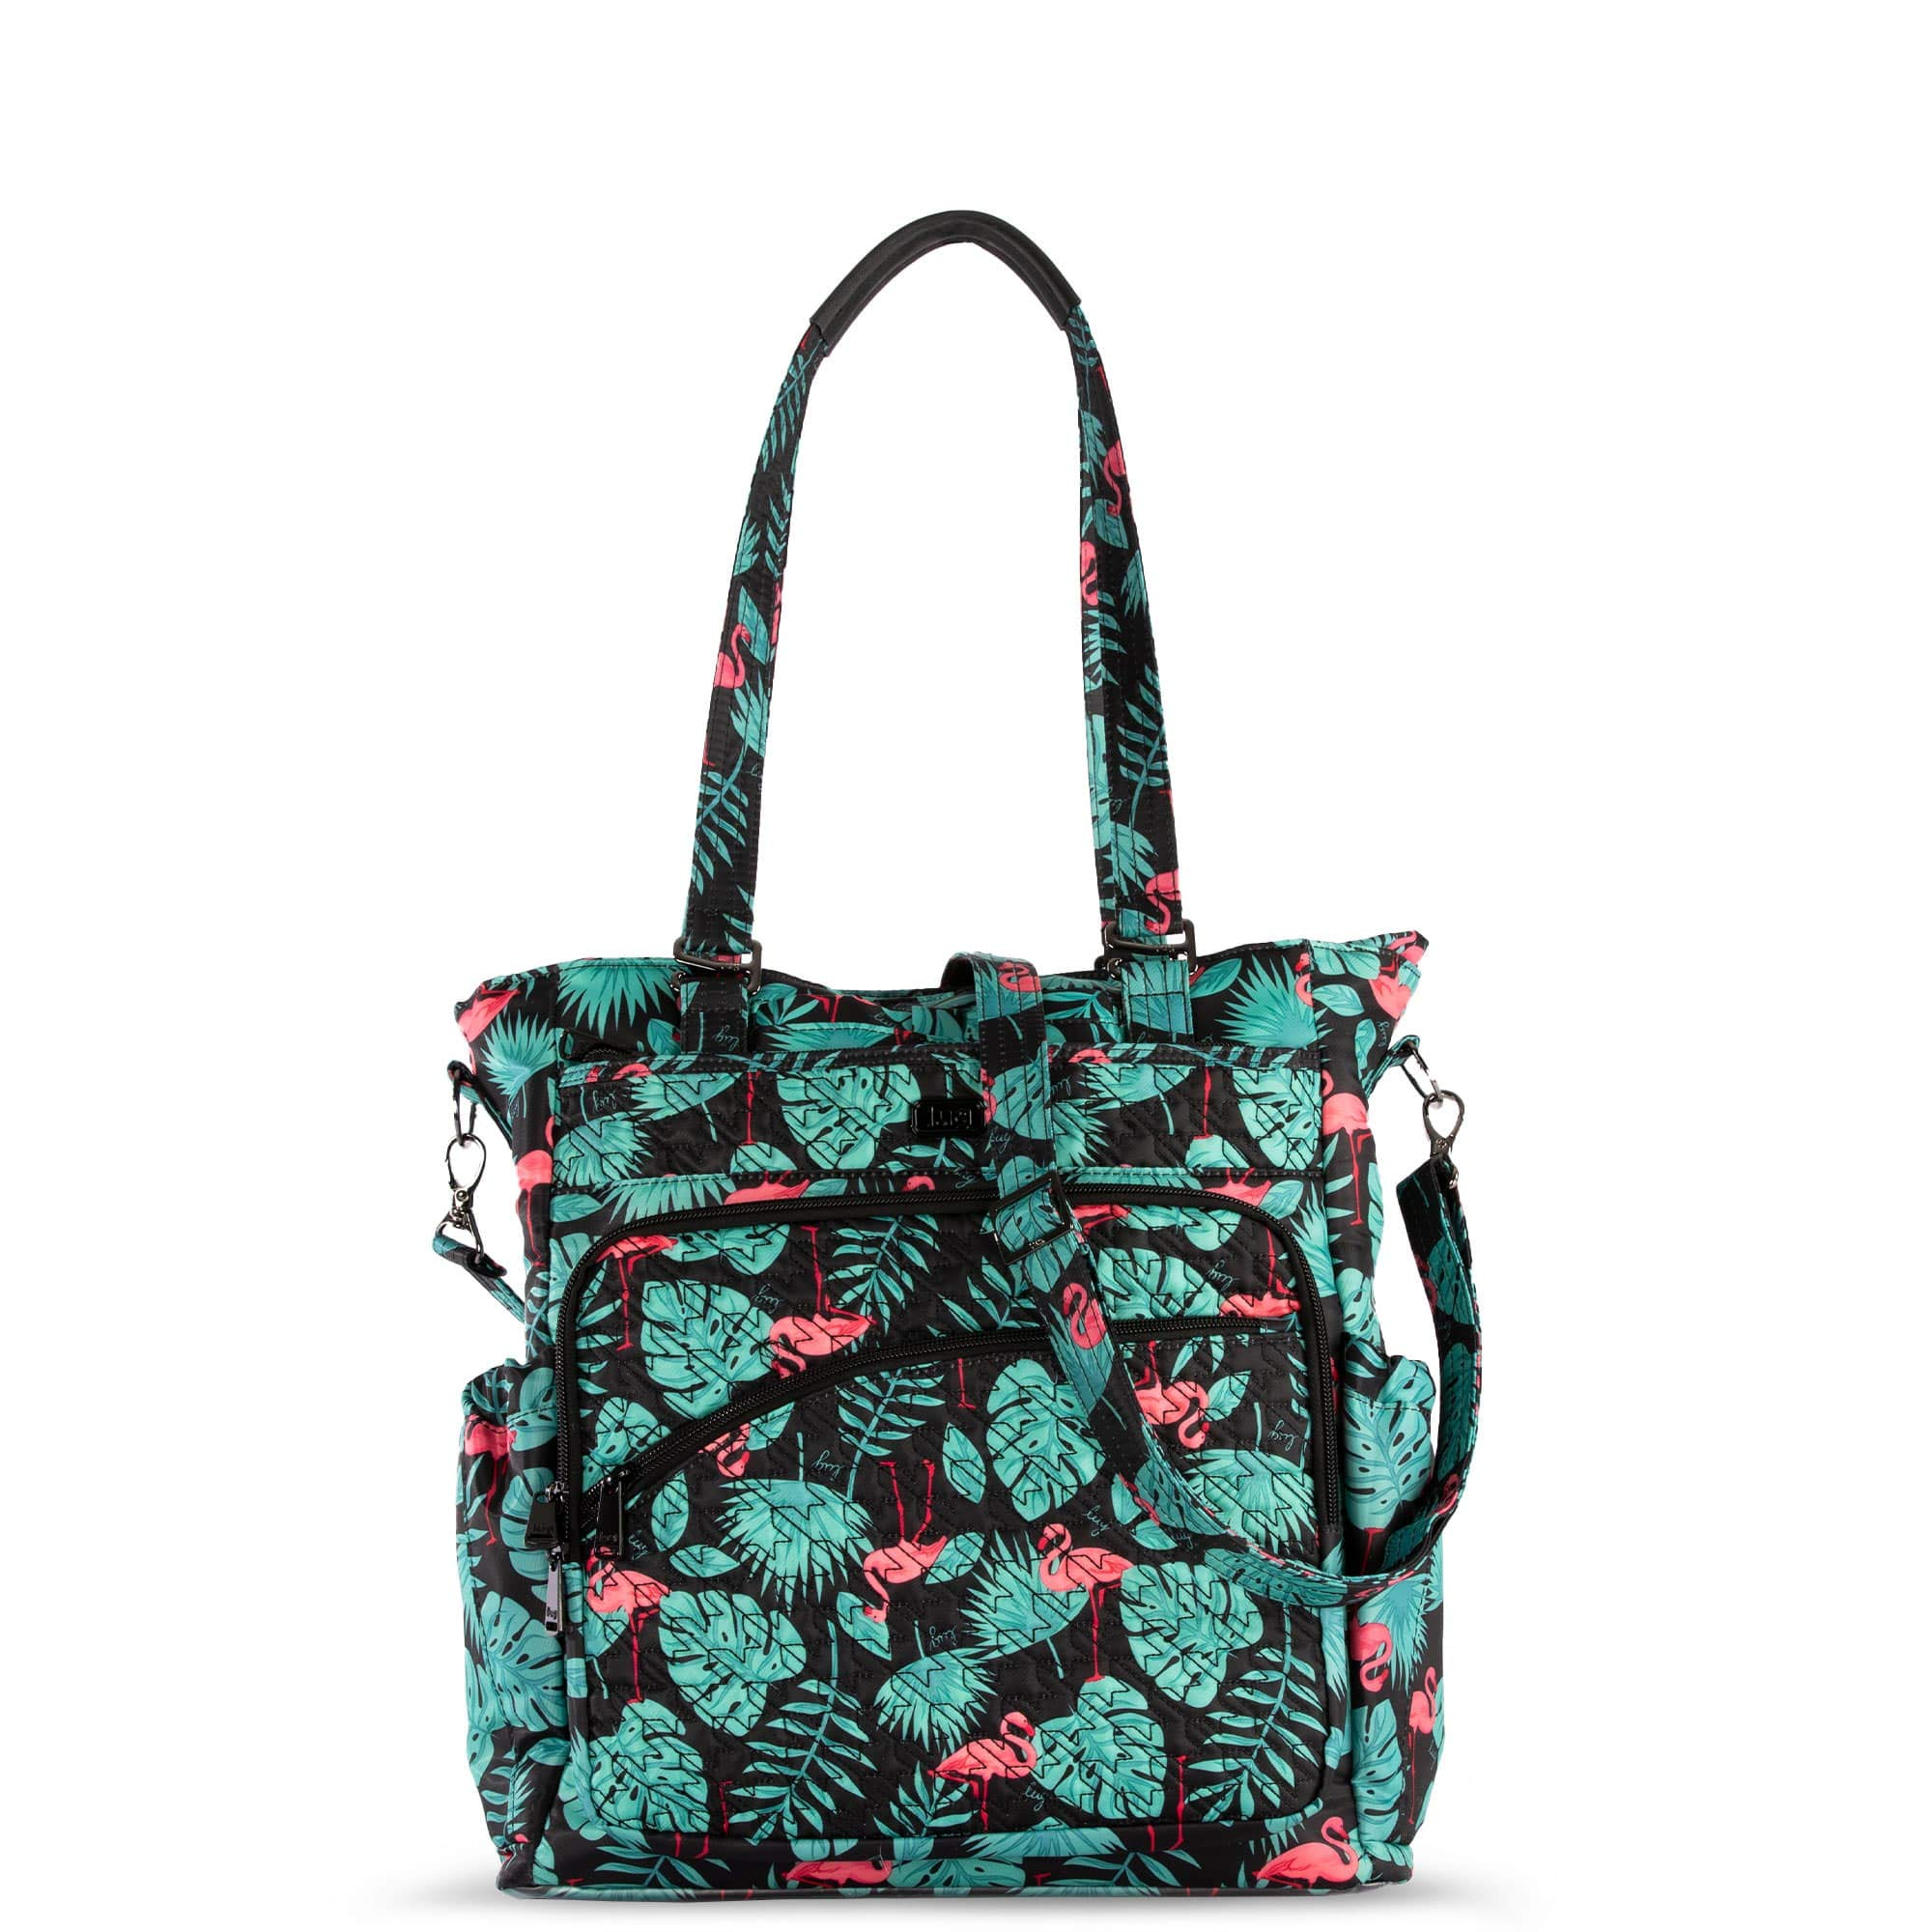 Lug Women's Ace 2 Convertible Travel Tote, Flamingo Black, One Size